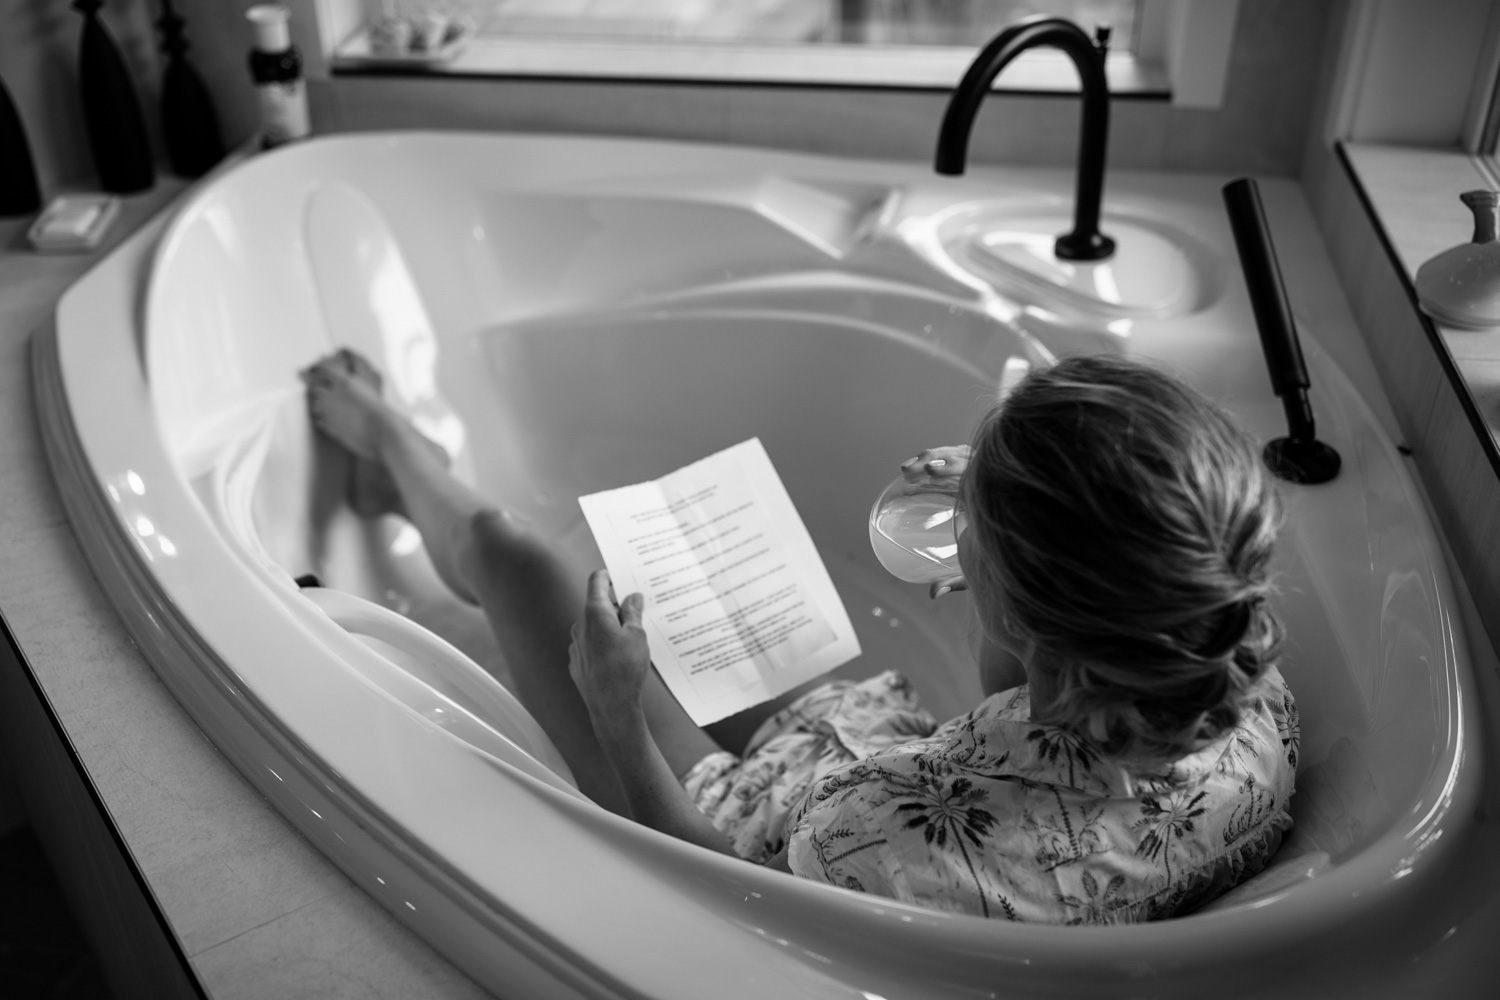 Candid photo of bride drinking wine and reading through her vows in the bath